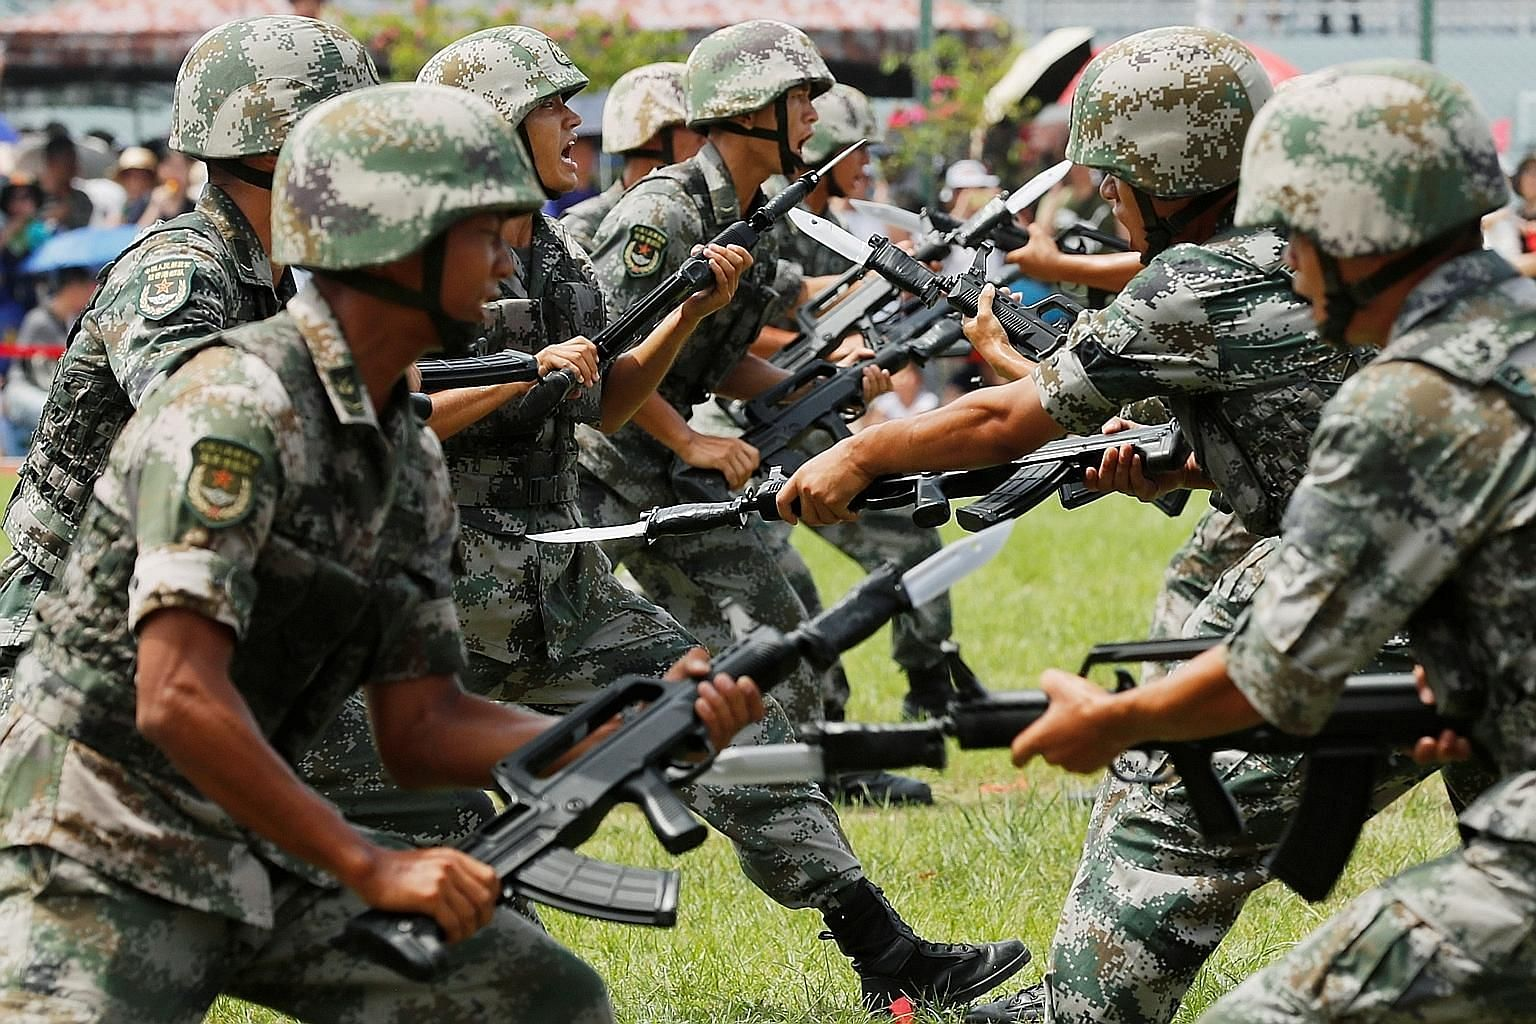 People's Liberation Army (PLA) soldiers taking part in a performance during an open day at the Stonecutters Island naval base in Hong Kong last month. In its defence White Paper issued yesterday, China said the PLA had an important role in protecting